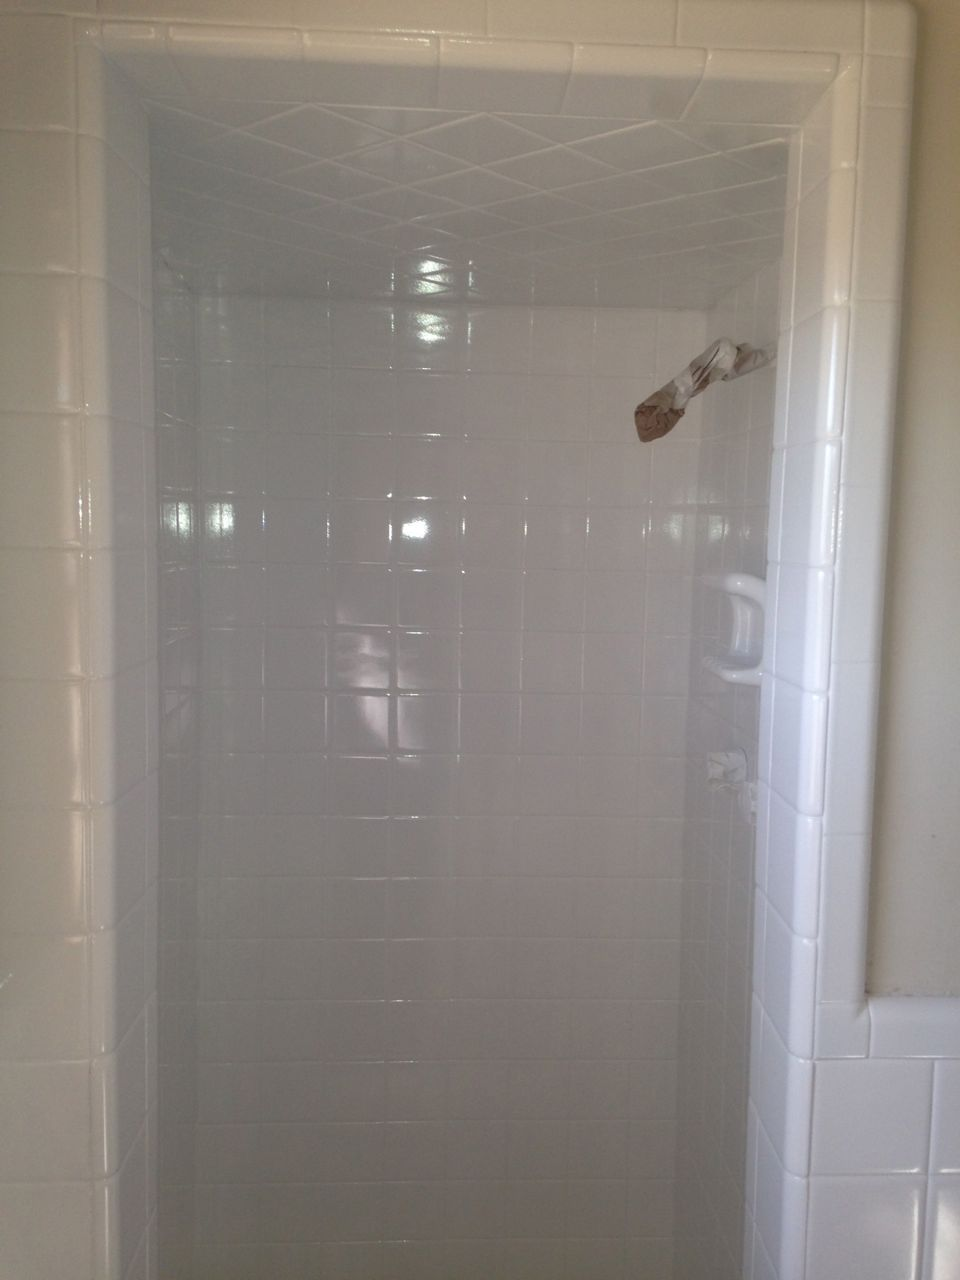 All Amazing Bathtub Refinishing Tampa FL Surfaces Come With A 10 Year  Guarantee! Call Us Now: (813) 922 2880